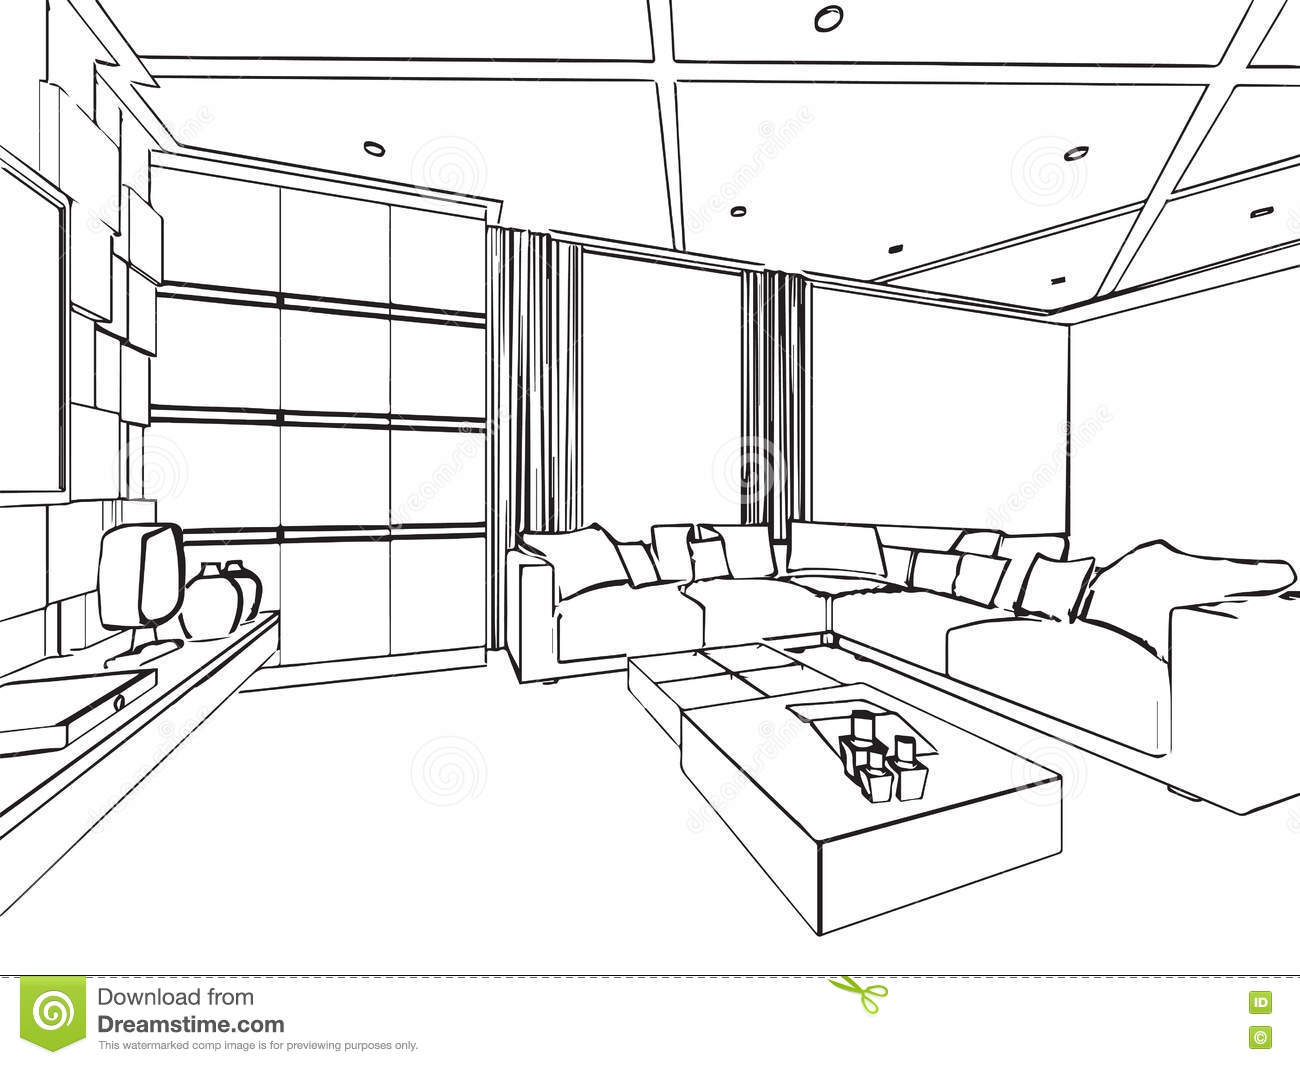 Outline sketch drawing interior perspective of house stock for Dessin architecture interieur